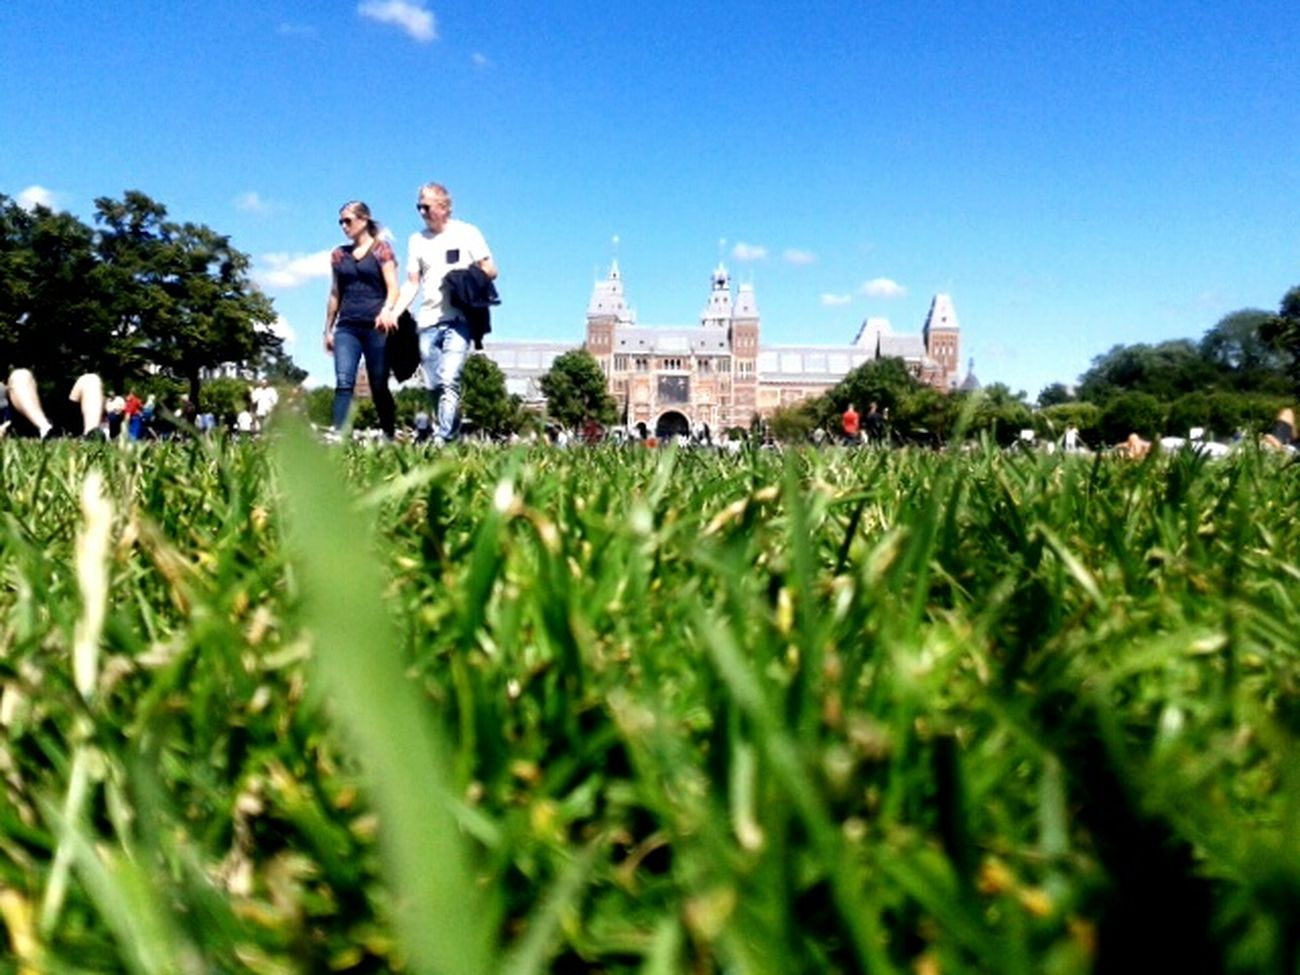 Chilling in Amsterdam. Togetherness Grass Vacations Outdoors Travel City Travel Destinations Clear Sky Architecture Nederland Amsterdamcity Summer Vibes Dutch Cities Nederlandse Q Park Museumplein Museums Walking Around Rijksmuseum